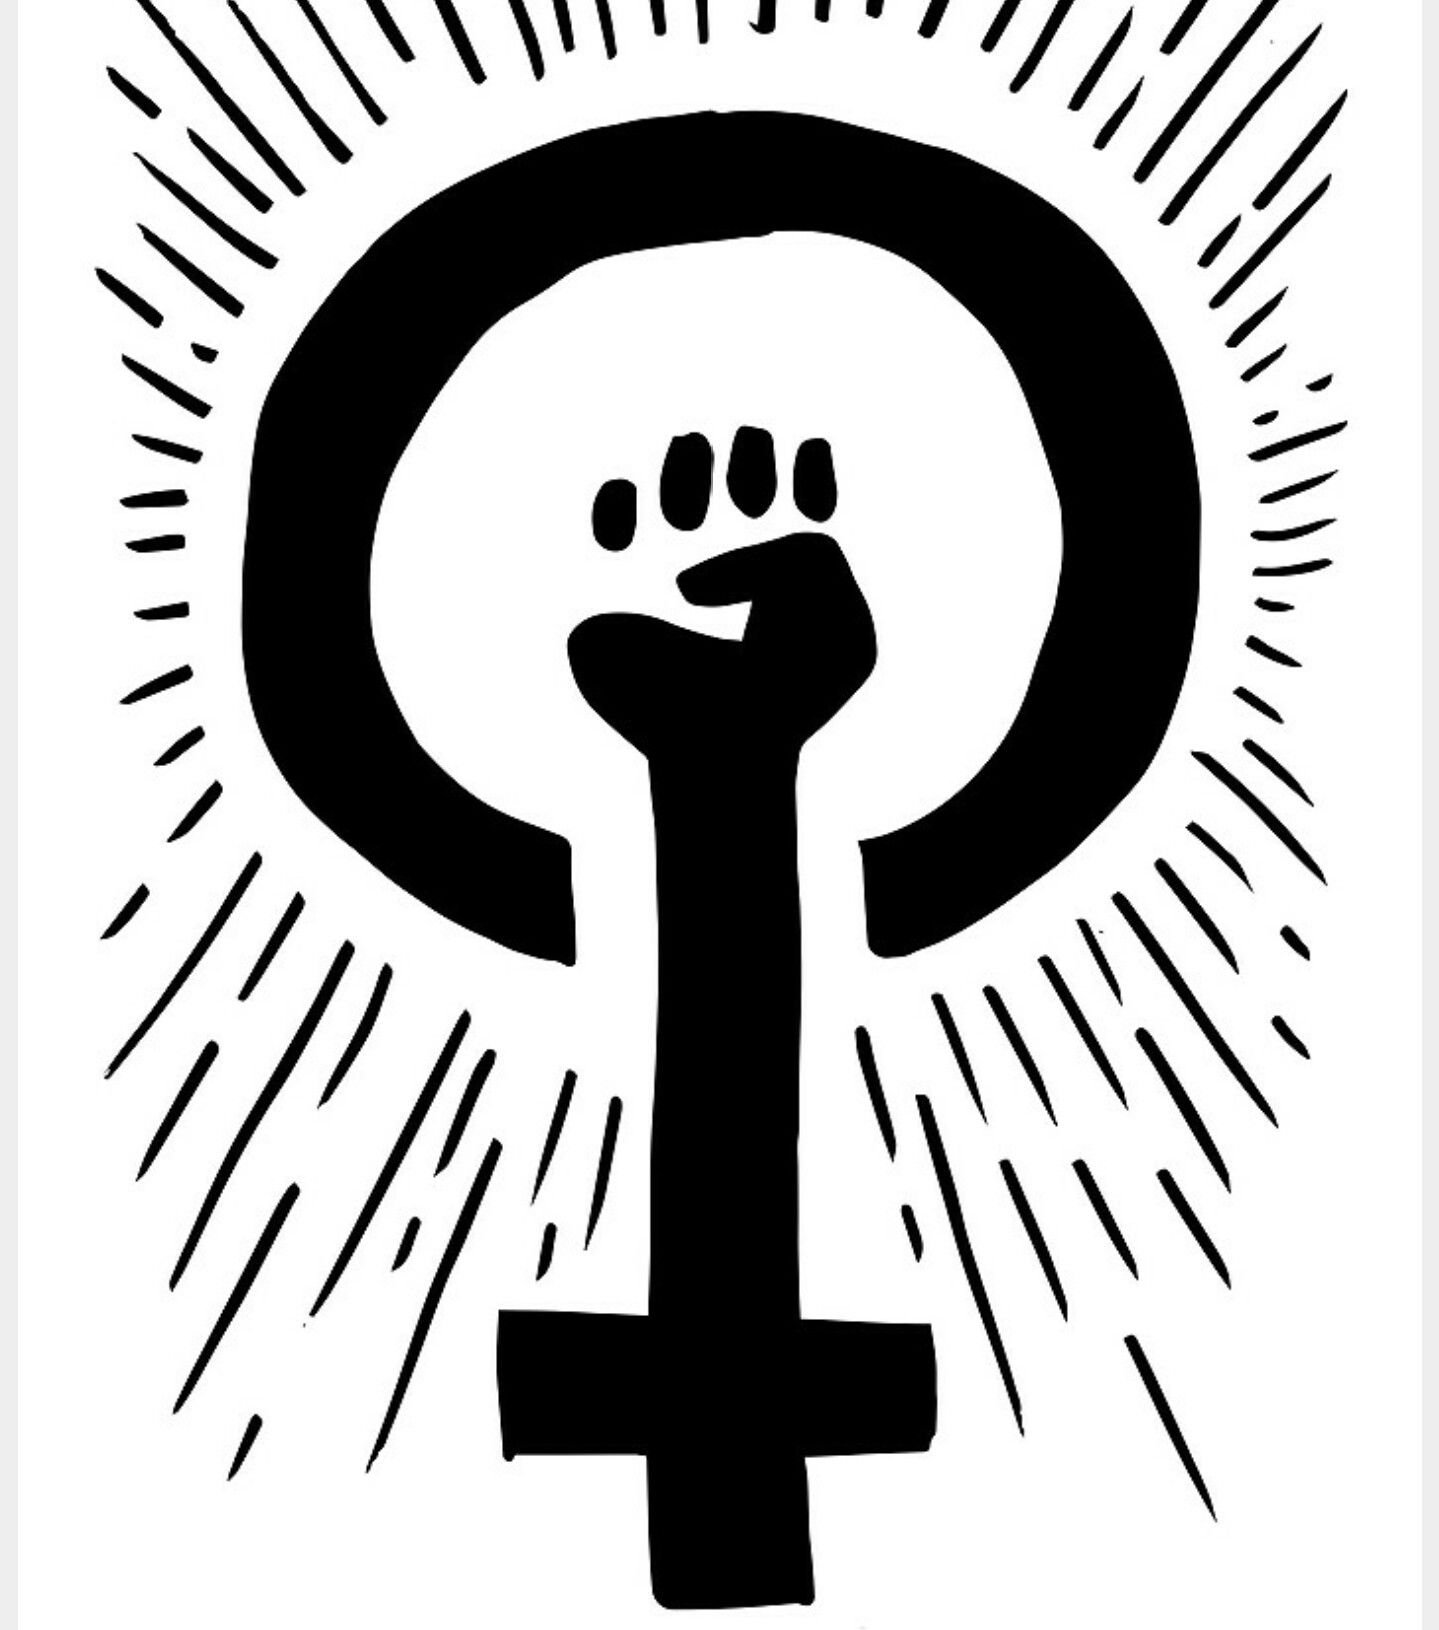 Womens march inclusion equality strength symbols symbols womens march inclusion equality strength biocorpaavc Image collections